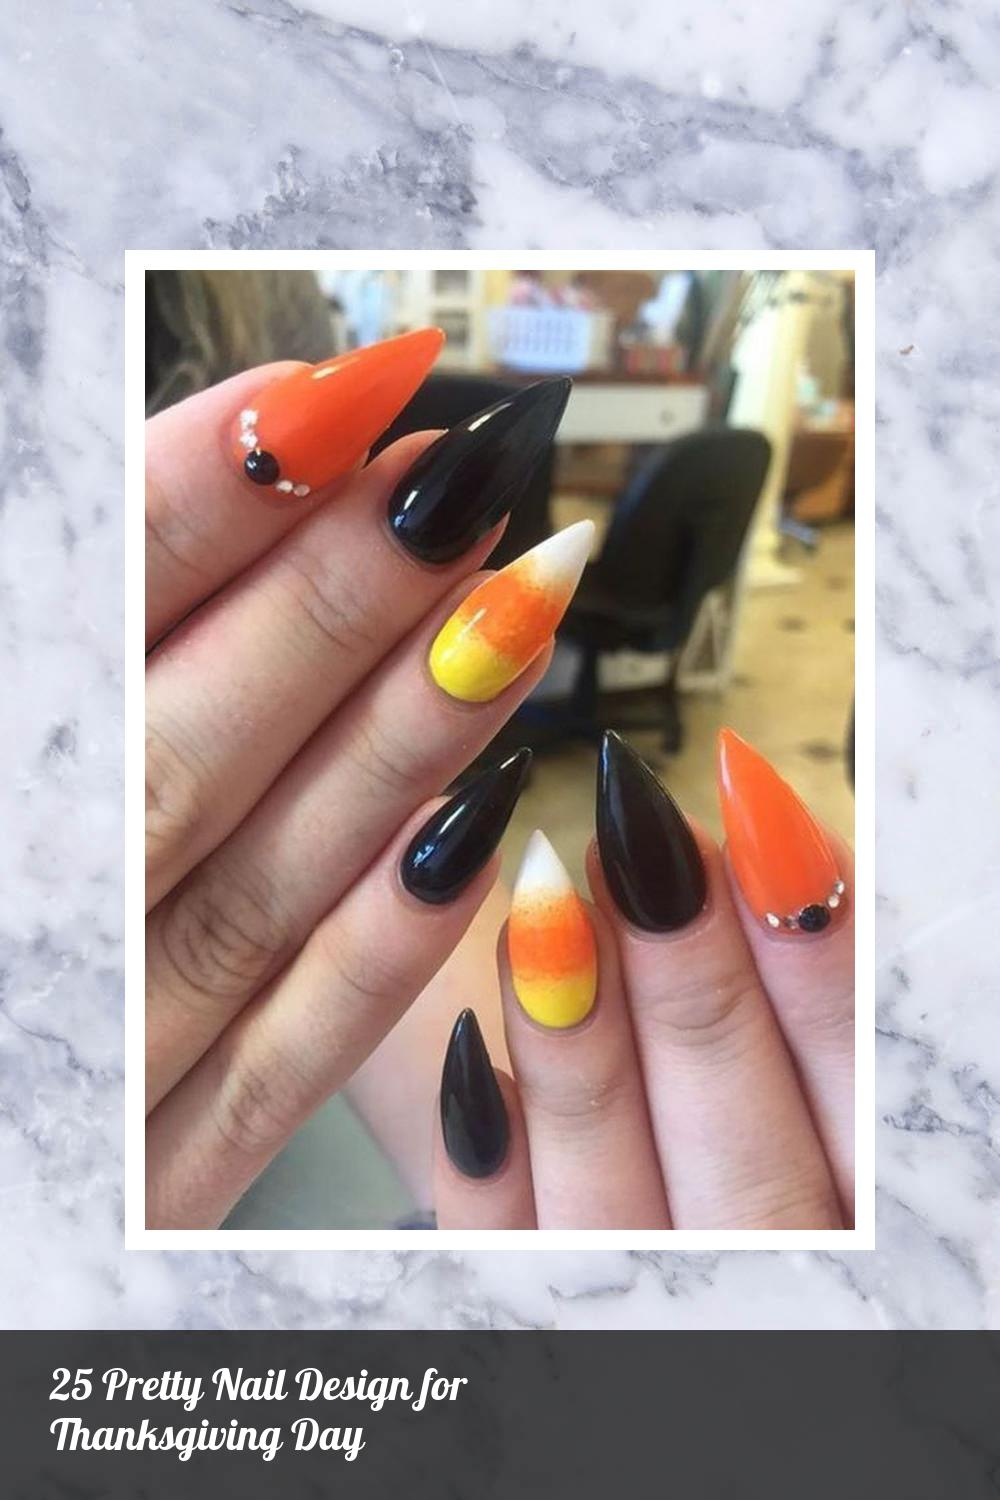 25 Pretty Nail Design for Thanksgiving Day 22